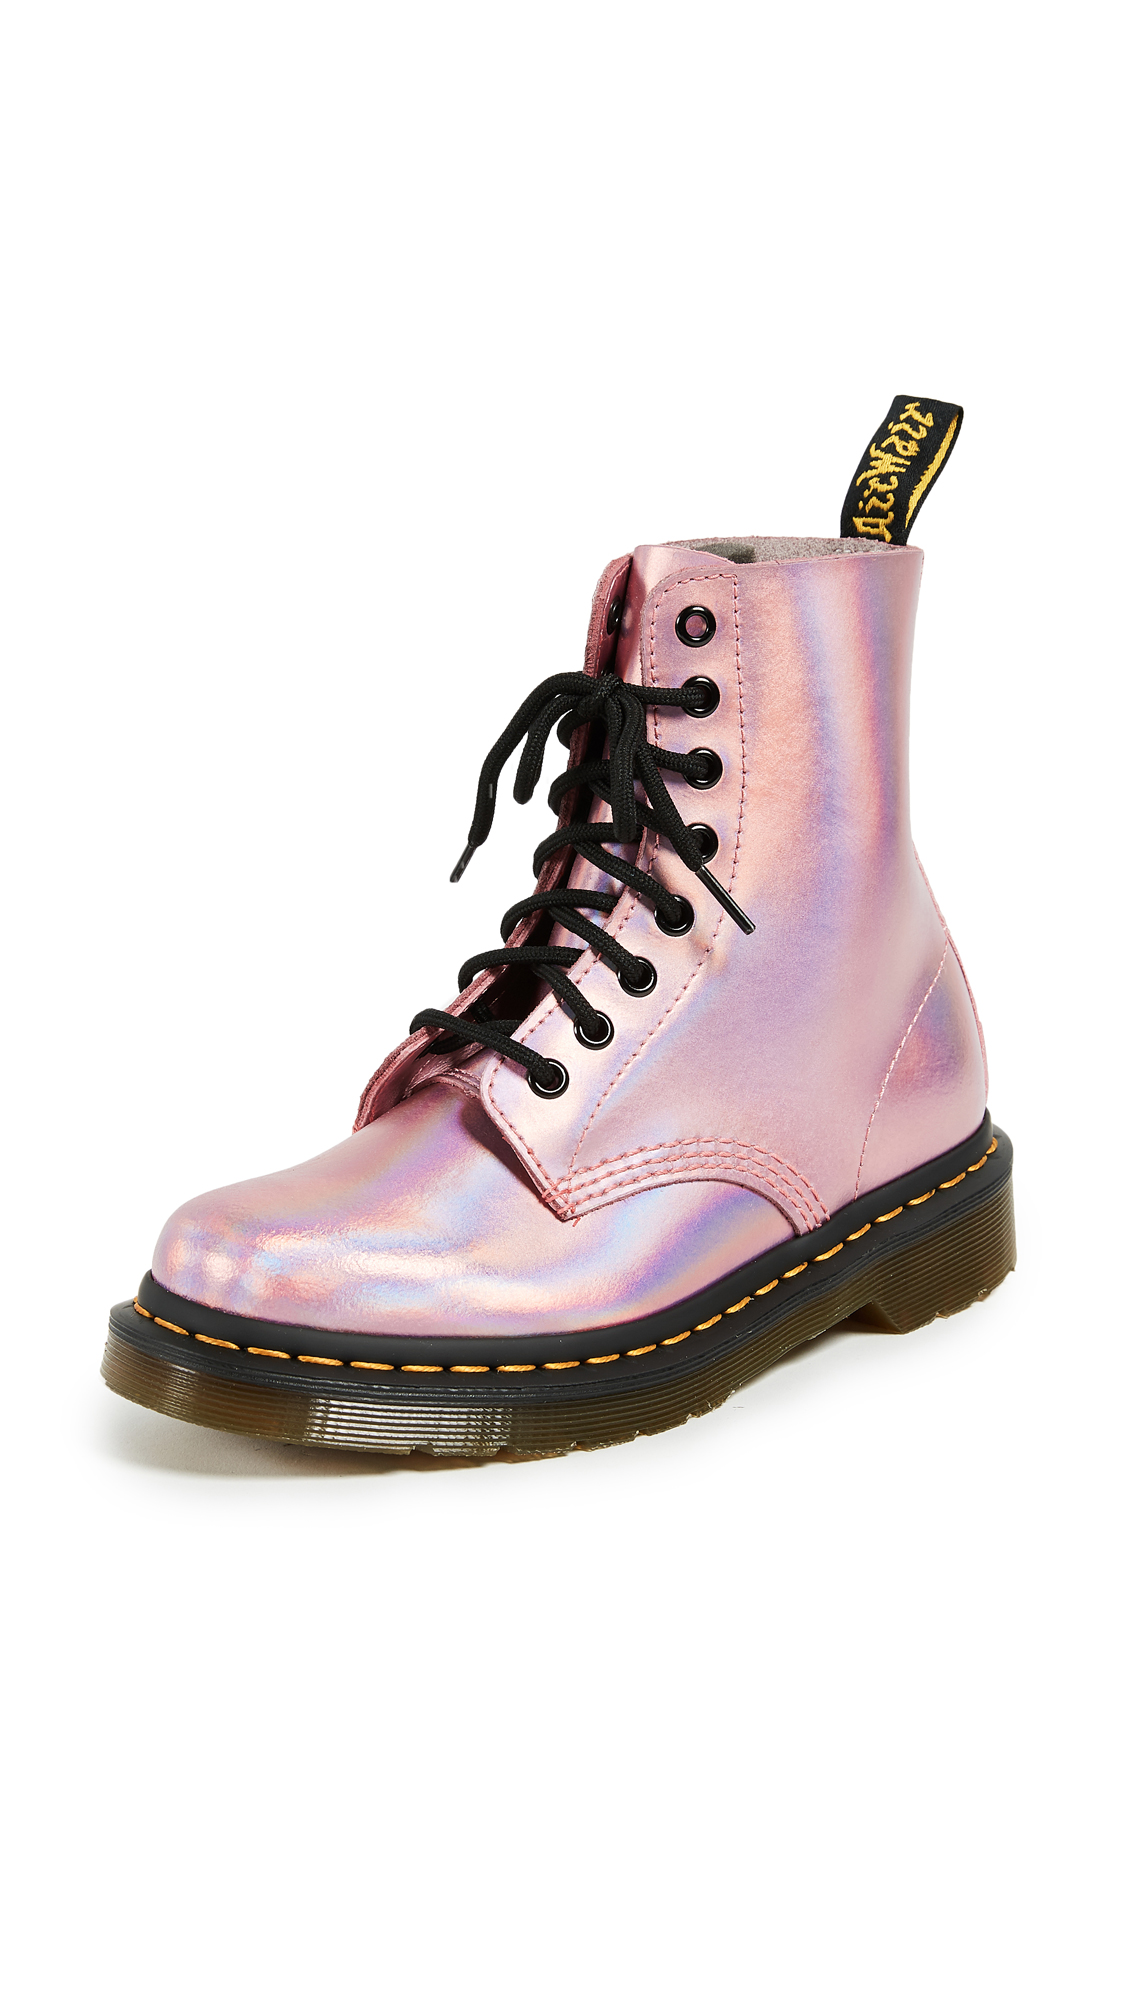 Dr. Martens Pascal IM Boots - Mallow Pink